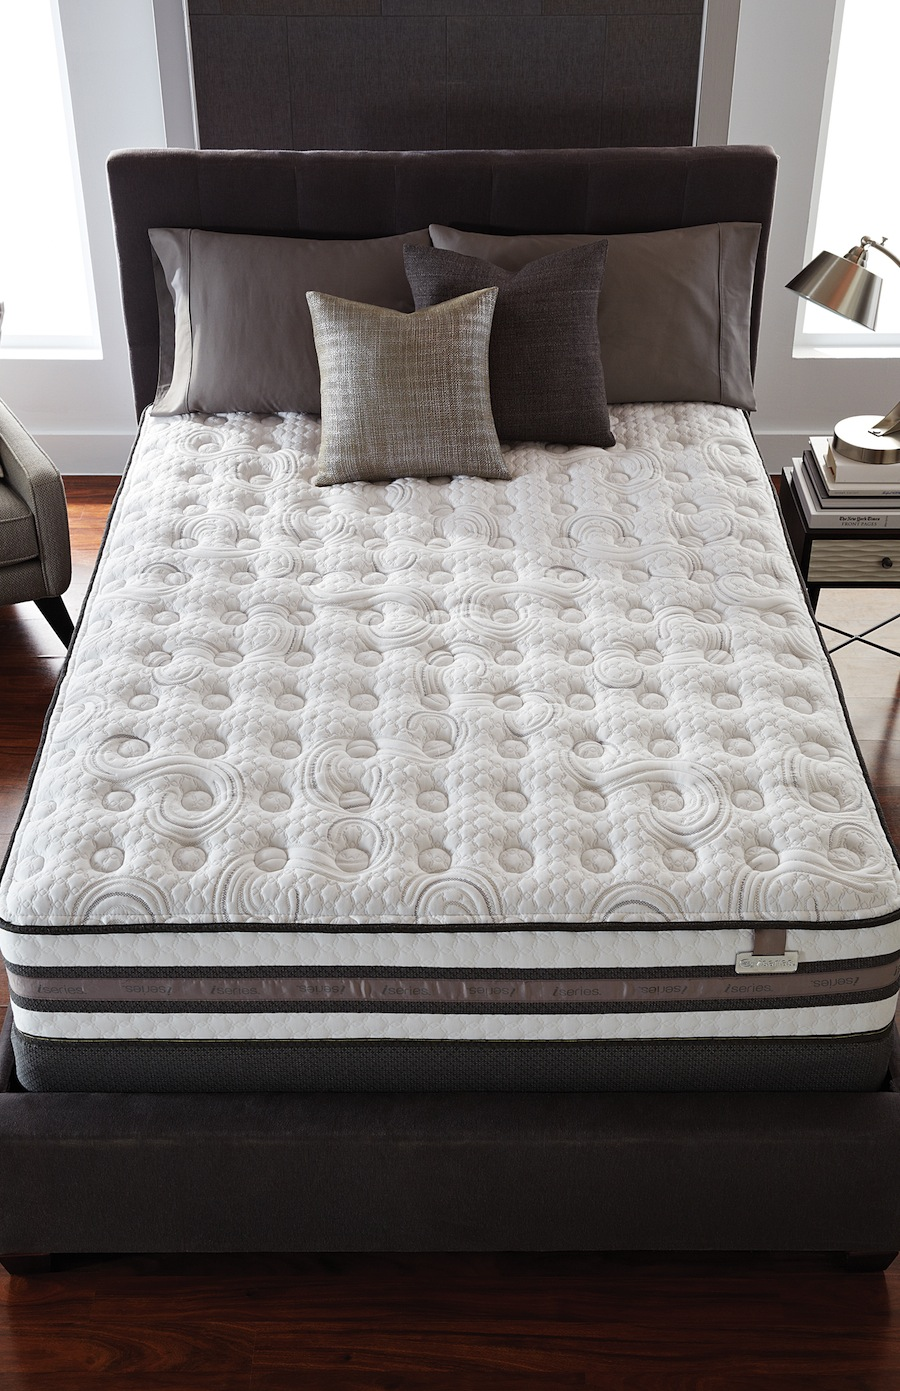 How to Choose the Perfect Mattress for Your New Home in Venice, FL